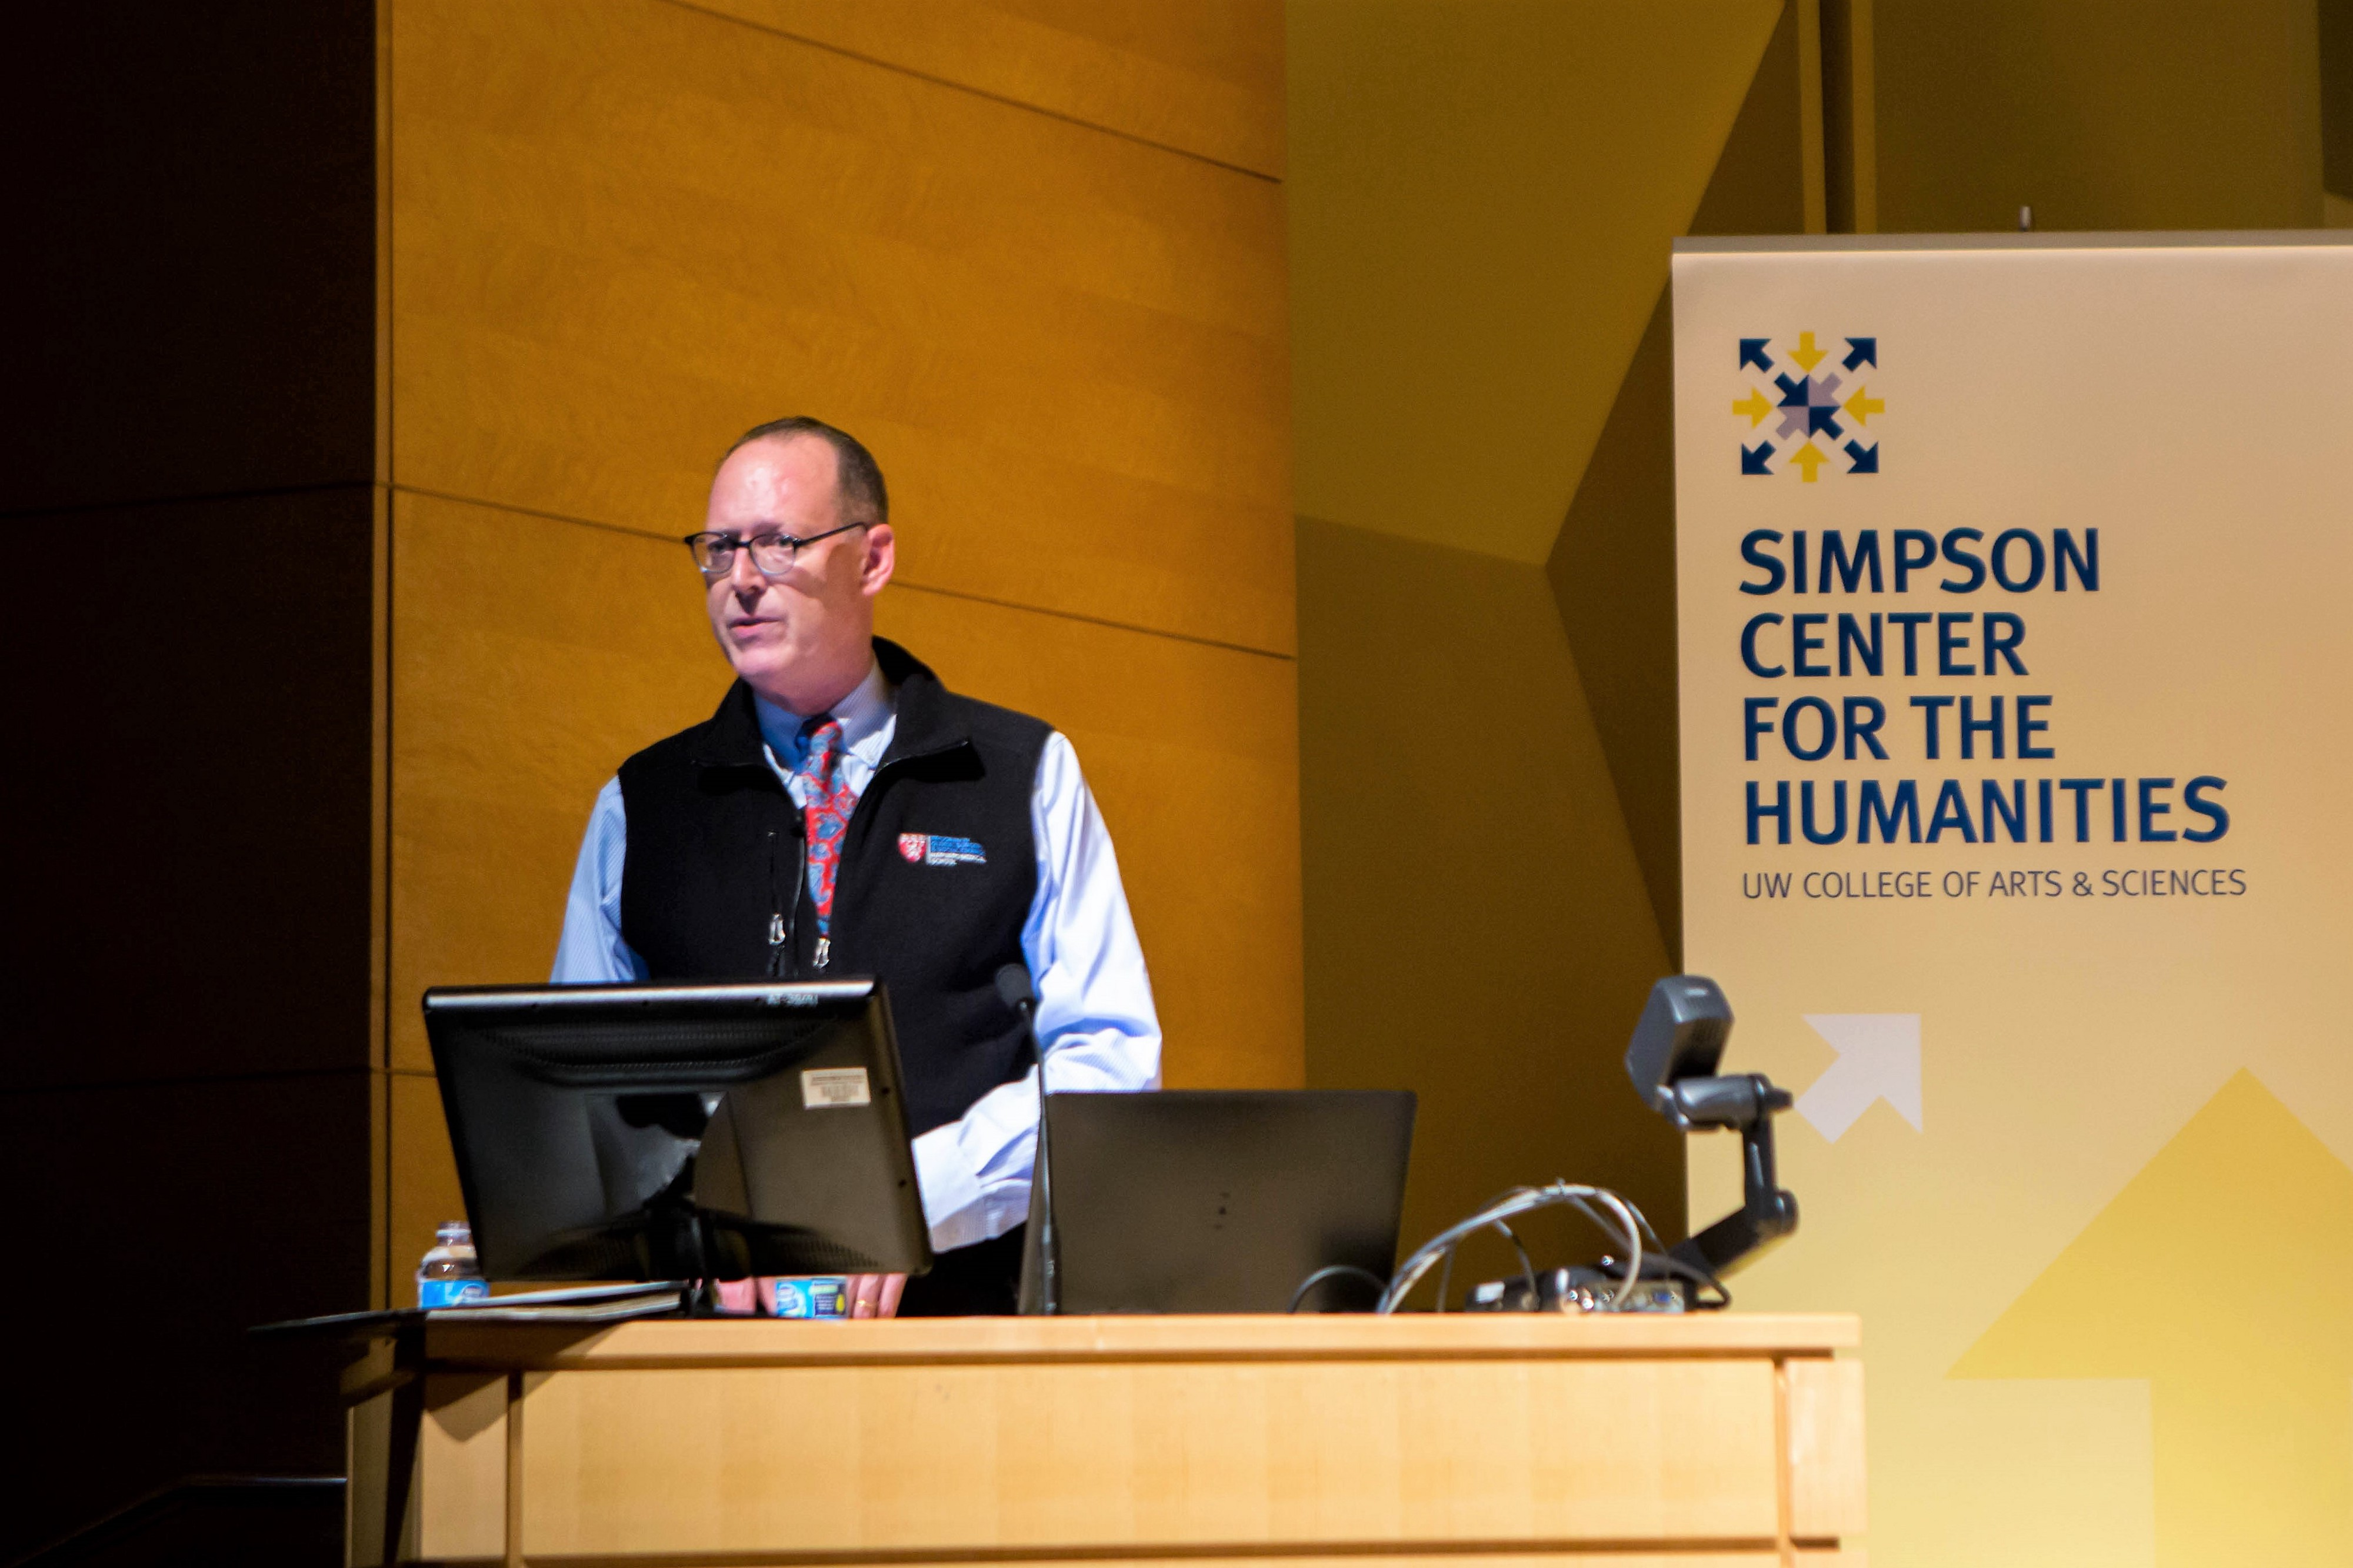 Stopping Infectious Disease Requires 'Staff, Space, Stuff